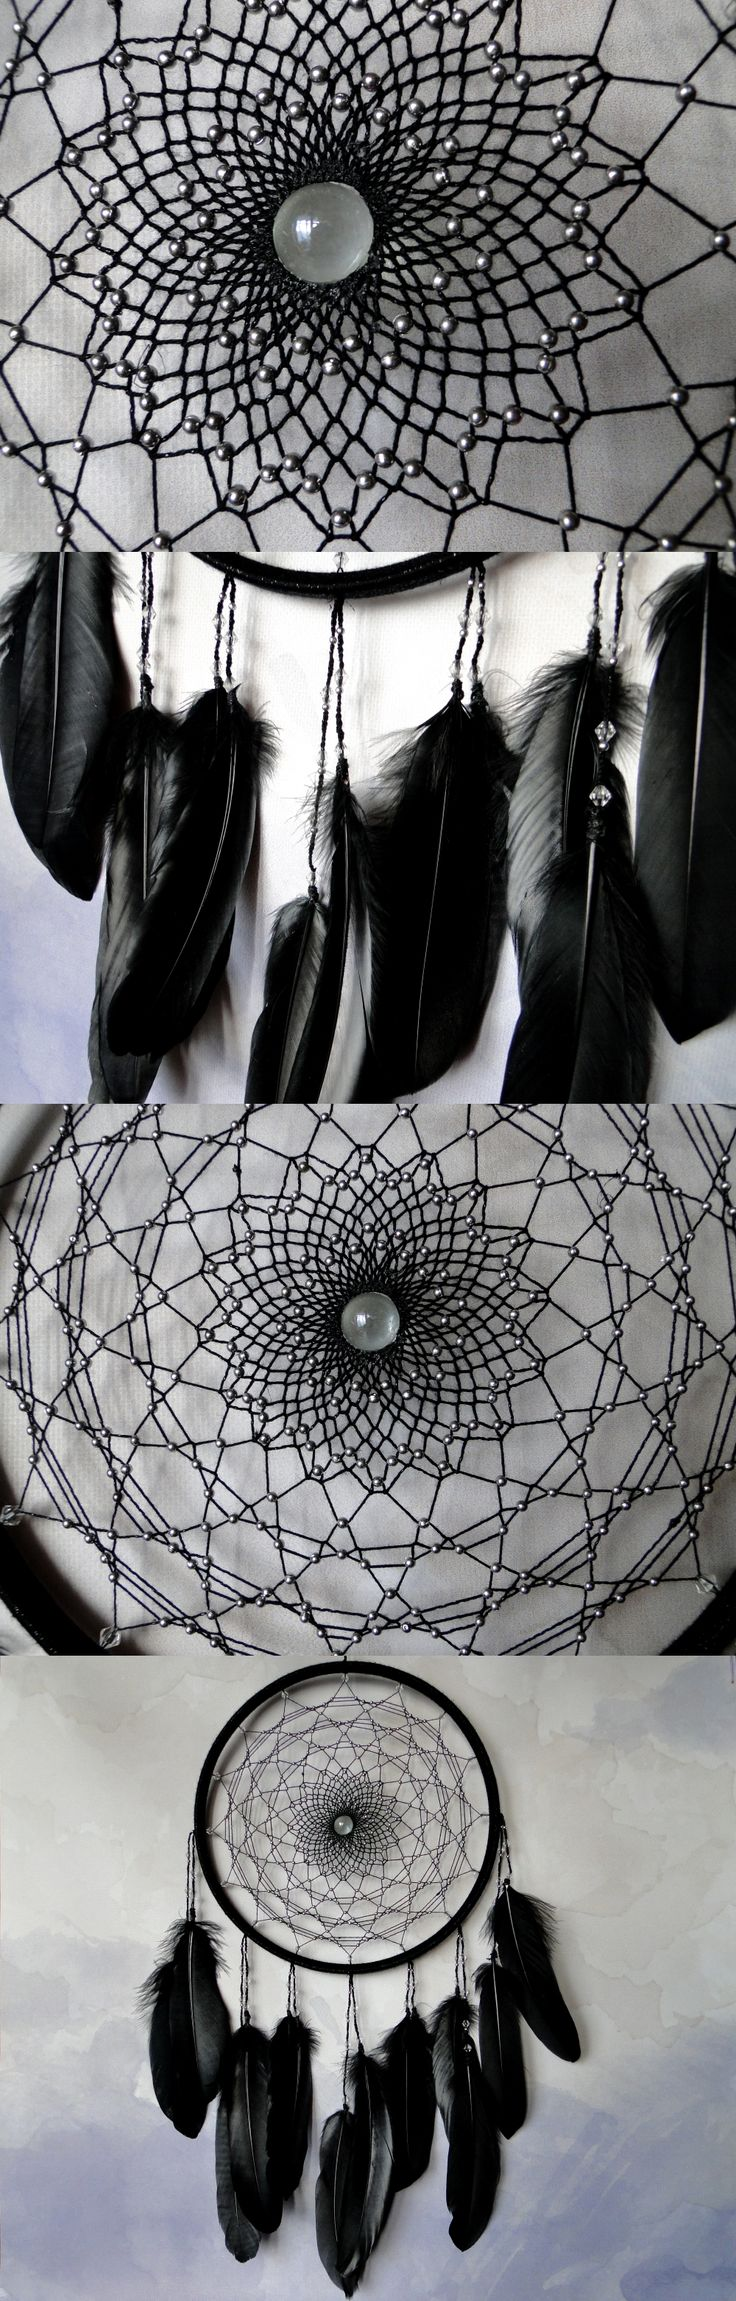 I wish I could weave webs like this!